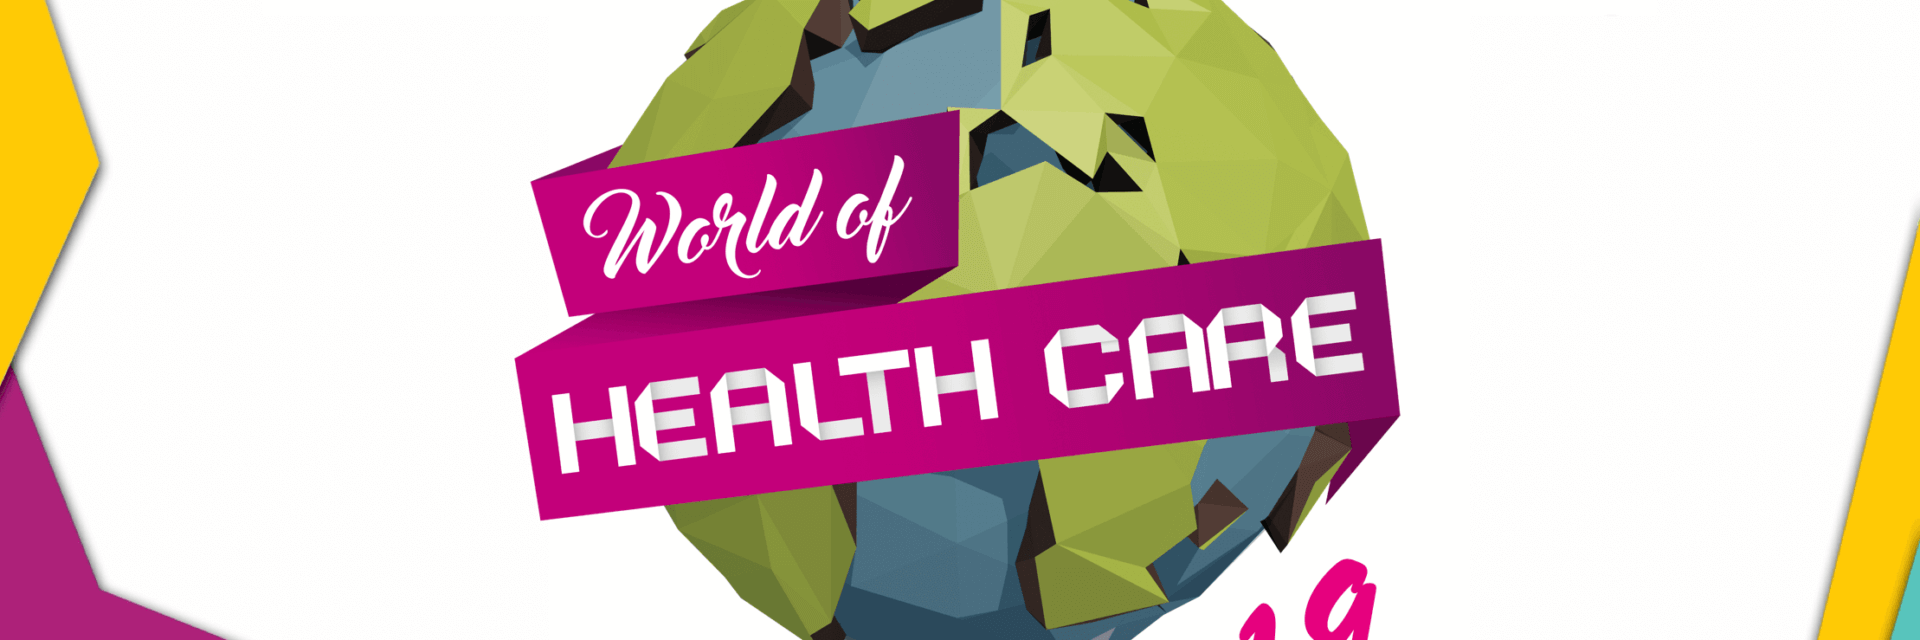 World of Healthcare – 26 September 2019